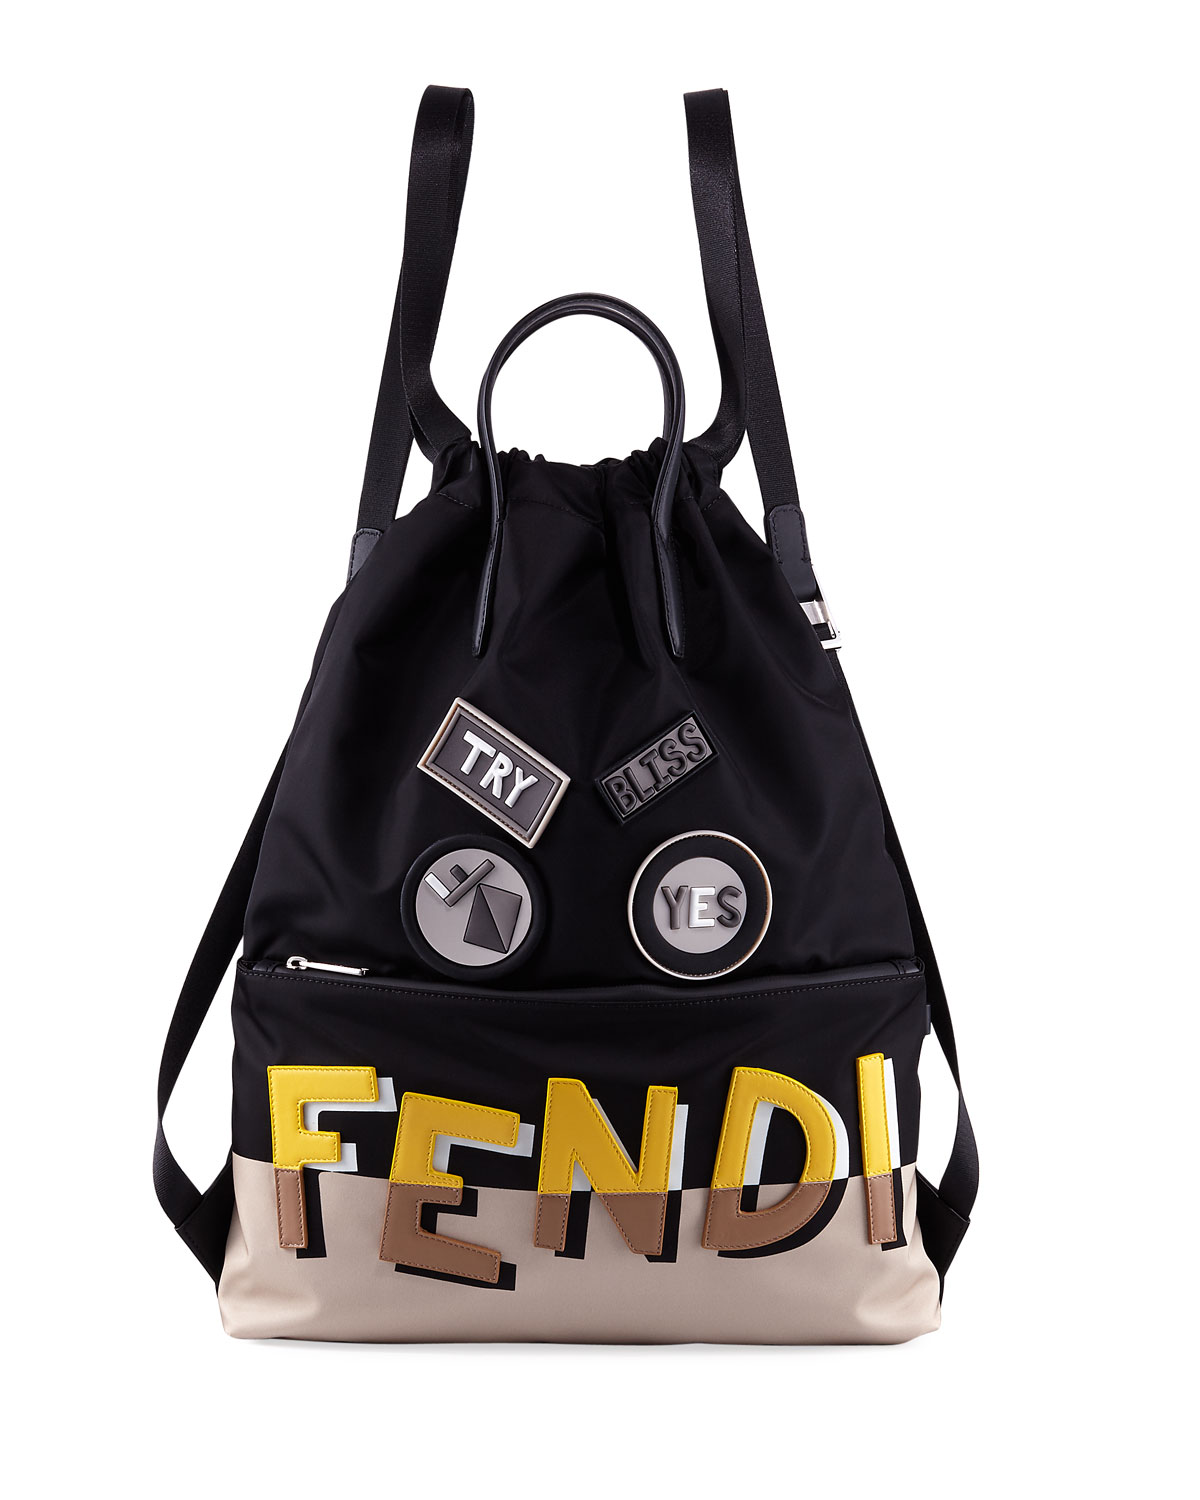 Fendi Vocabulary Monster Face Nylon   Leather Tote Backpack   Neiman ... ac80bb698c